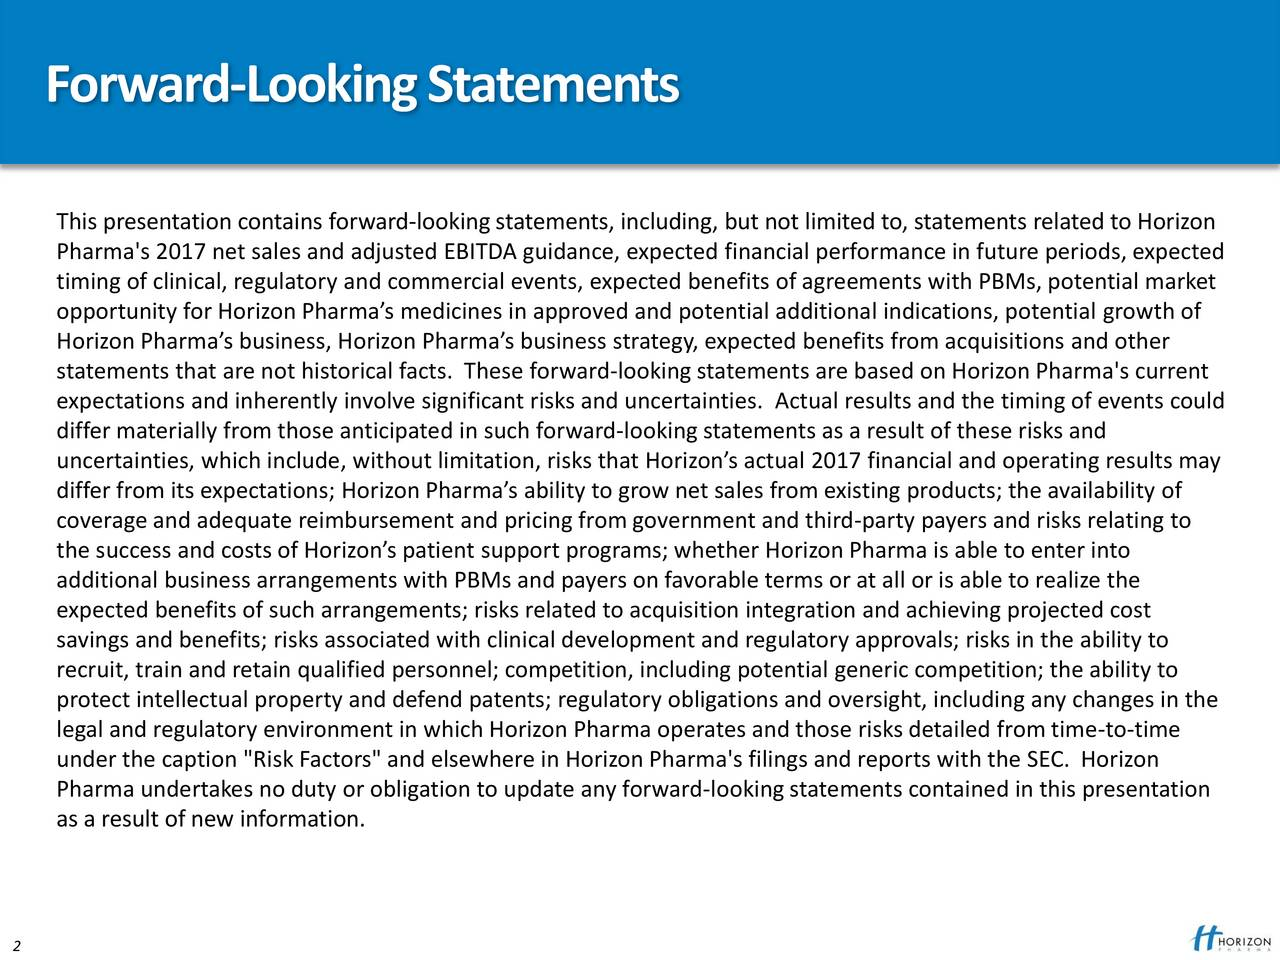 "This presentation contains forward-looking statements, including, but not limited to, statements related to Horizon Pharma's 2017 net sales and adjusted EBITDA guidance, expected financial performance in future periods, expected timing of clinical, regulatory and commercial events, expected benefits of agreements with PBMs, potential market opportunity for Horizon Pharmas medicines in approved and potential additional indications, potential growth of Horizon Pharmas business, Horizon Pharmas business strategy, expected benefits from acquisitions and other statements that are not historical facts. These forward-looking statements are based on Horizon Pharma's current expectations and inherently involve significant risks and uncertainties. Actual results and the timing of events could differ materially from those anticipated in such forward-looking statements as a result of these risks and uncertainties, which include, without limitation, risks that Horizons actual 2017 financial and operating results may differ from its expectations; Horizon Pharmas ability to grow net sales from existing products; the availability of coverage and adequate reimbursement and pricing from government and third-party payers and risks relating to the success and costs of Horizons patient support programs; whether Horizon Pharma is able to enter into additional business arrangements with PBMs and payers on favorable terms or at all or is able to realize the expected benefits of such arrangements; risks related to acquisition integration and achieving projected cost savings and benefits; risks associated with clinical development and regulatory approvals; risks in the ability to recruit, train and retain qualified personnel; competition, including potential generic competition; the ability to protect intellectual property and defend patents; regulatory obligations and oversight, including any changes in the legal and regulatory environment in which Horizon Pharma operates and those risks detailed from time-to-time under the caption ""Risk Factors"" and elsewhere in Horizon Pharma's filings and reports with the SEC. Horizon Pharma undertakes no duty or obligation to update any forward-lookingstatements contained in this presentation as a result of new information. Confidential Information  Horizon Pharma plc"